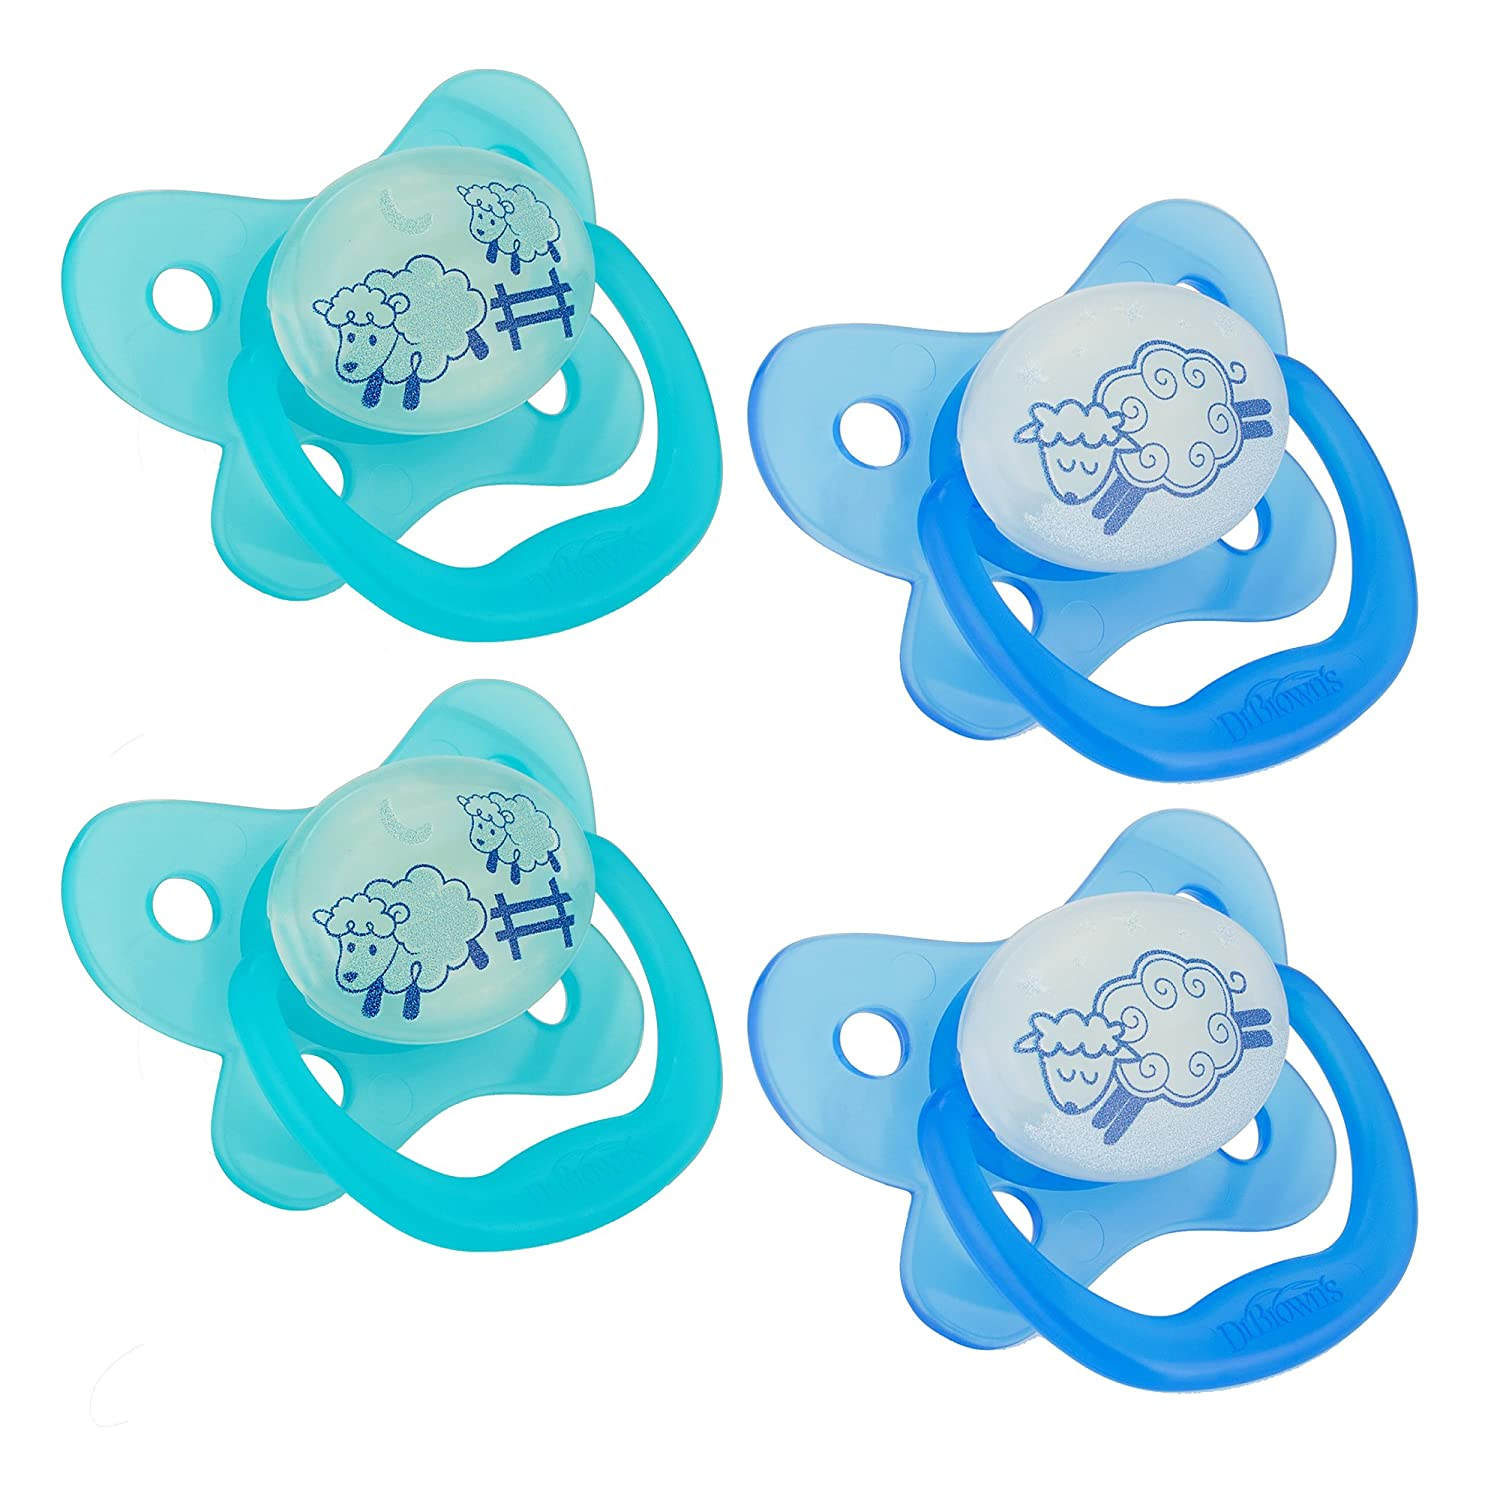 Dr. Browns PreVent Contour Glow in the Dark Pacifier, Stage 1 (0-6m), Blue, 4-Count